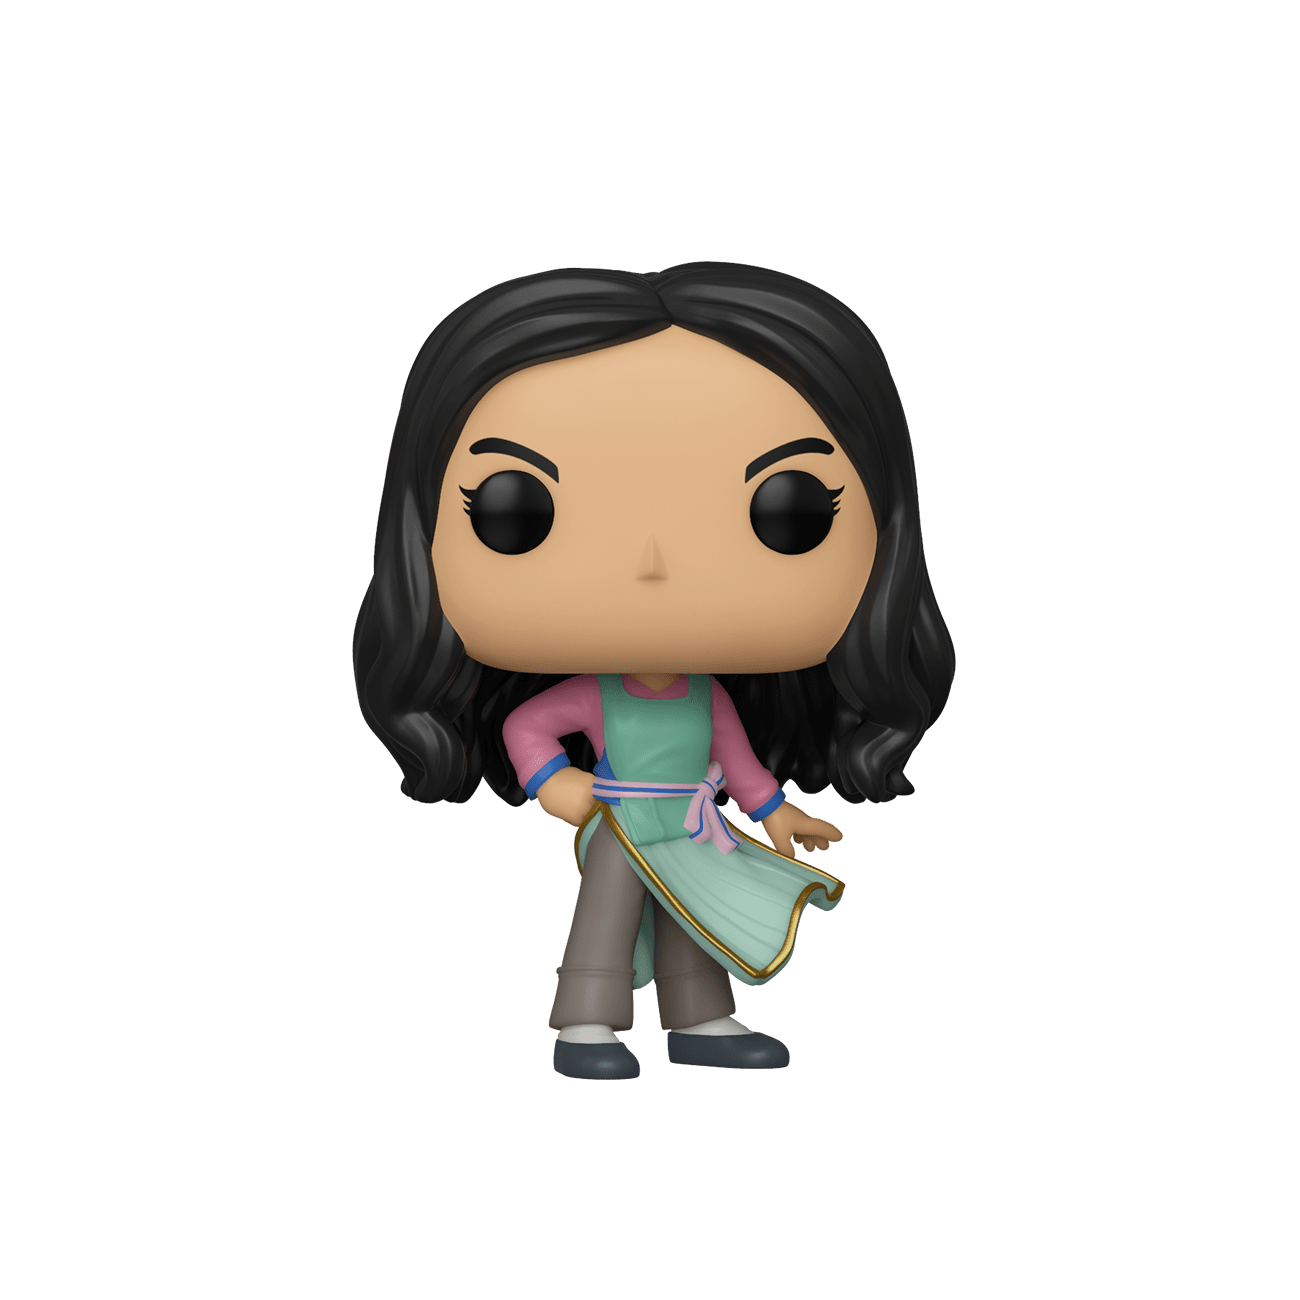 Mulan Live Action Villager Pop! Vinyl Figure